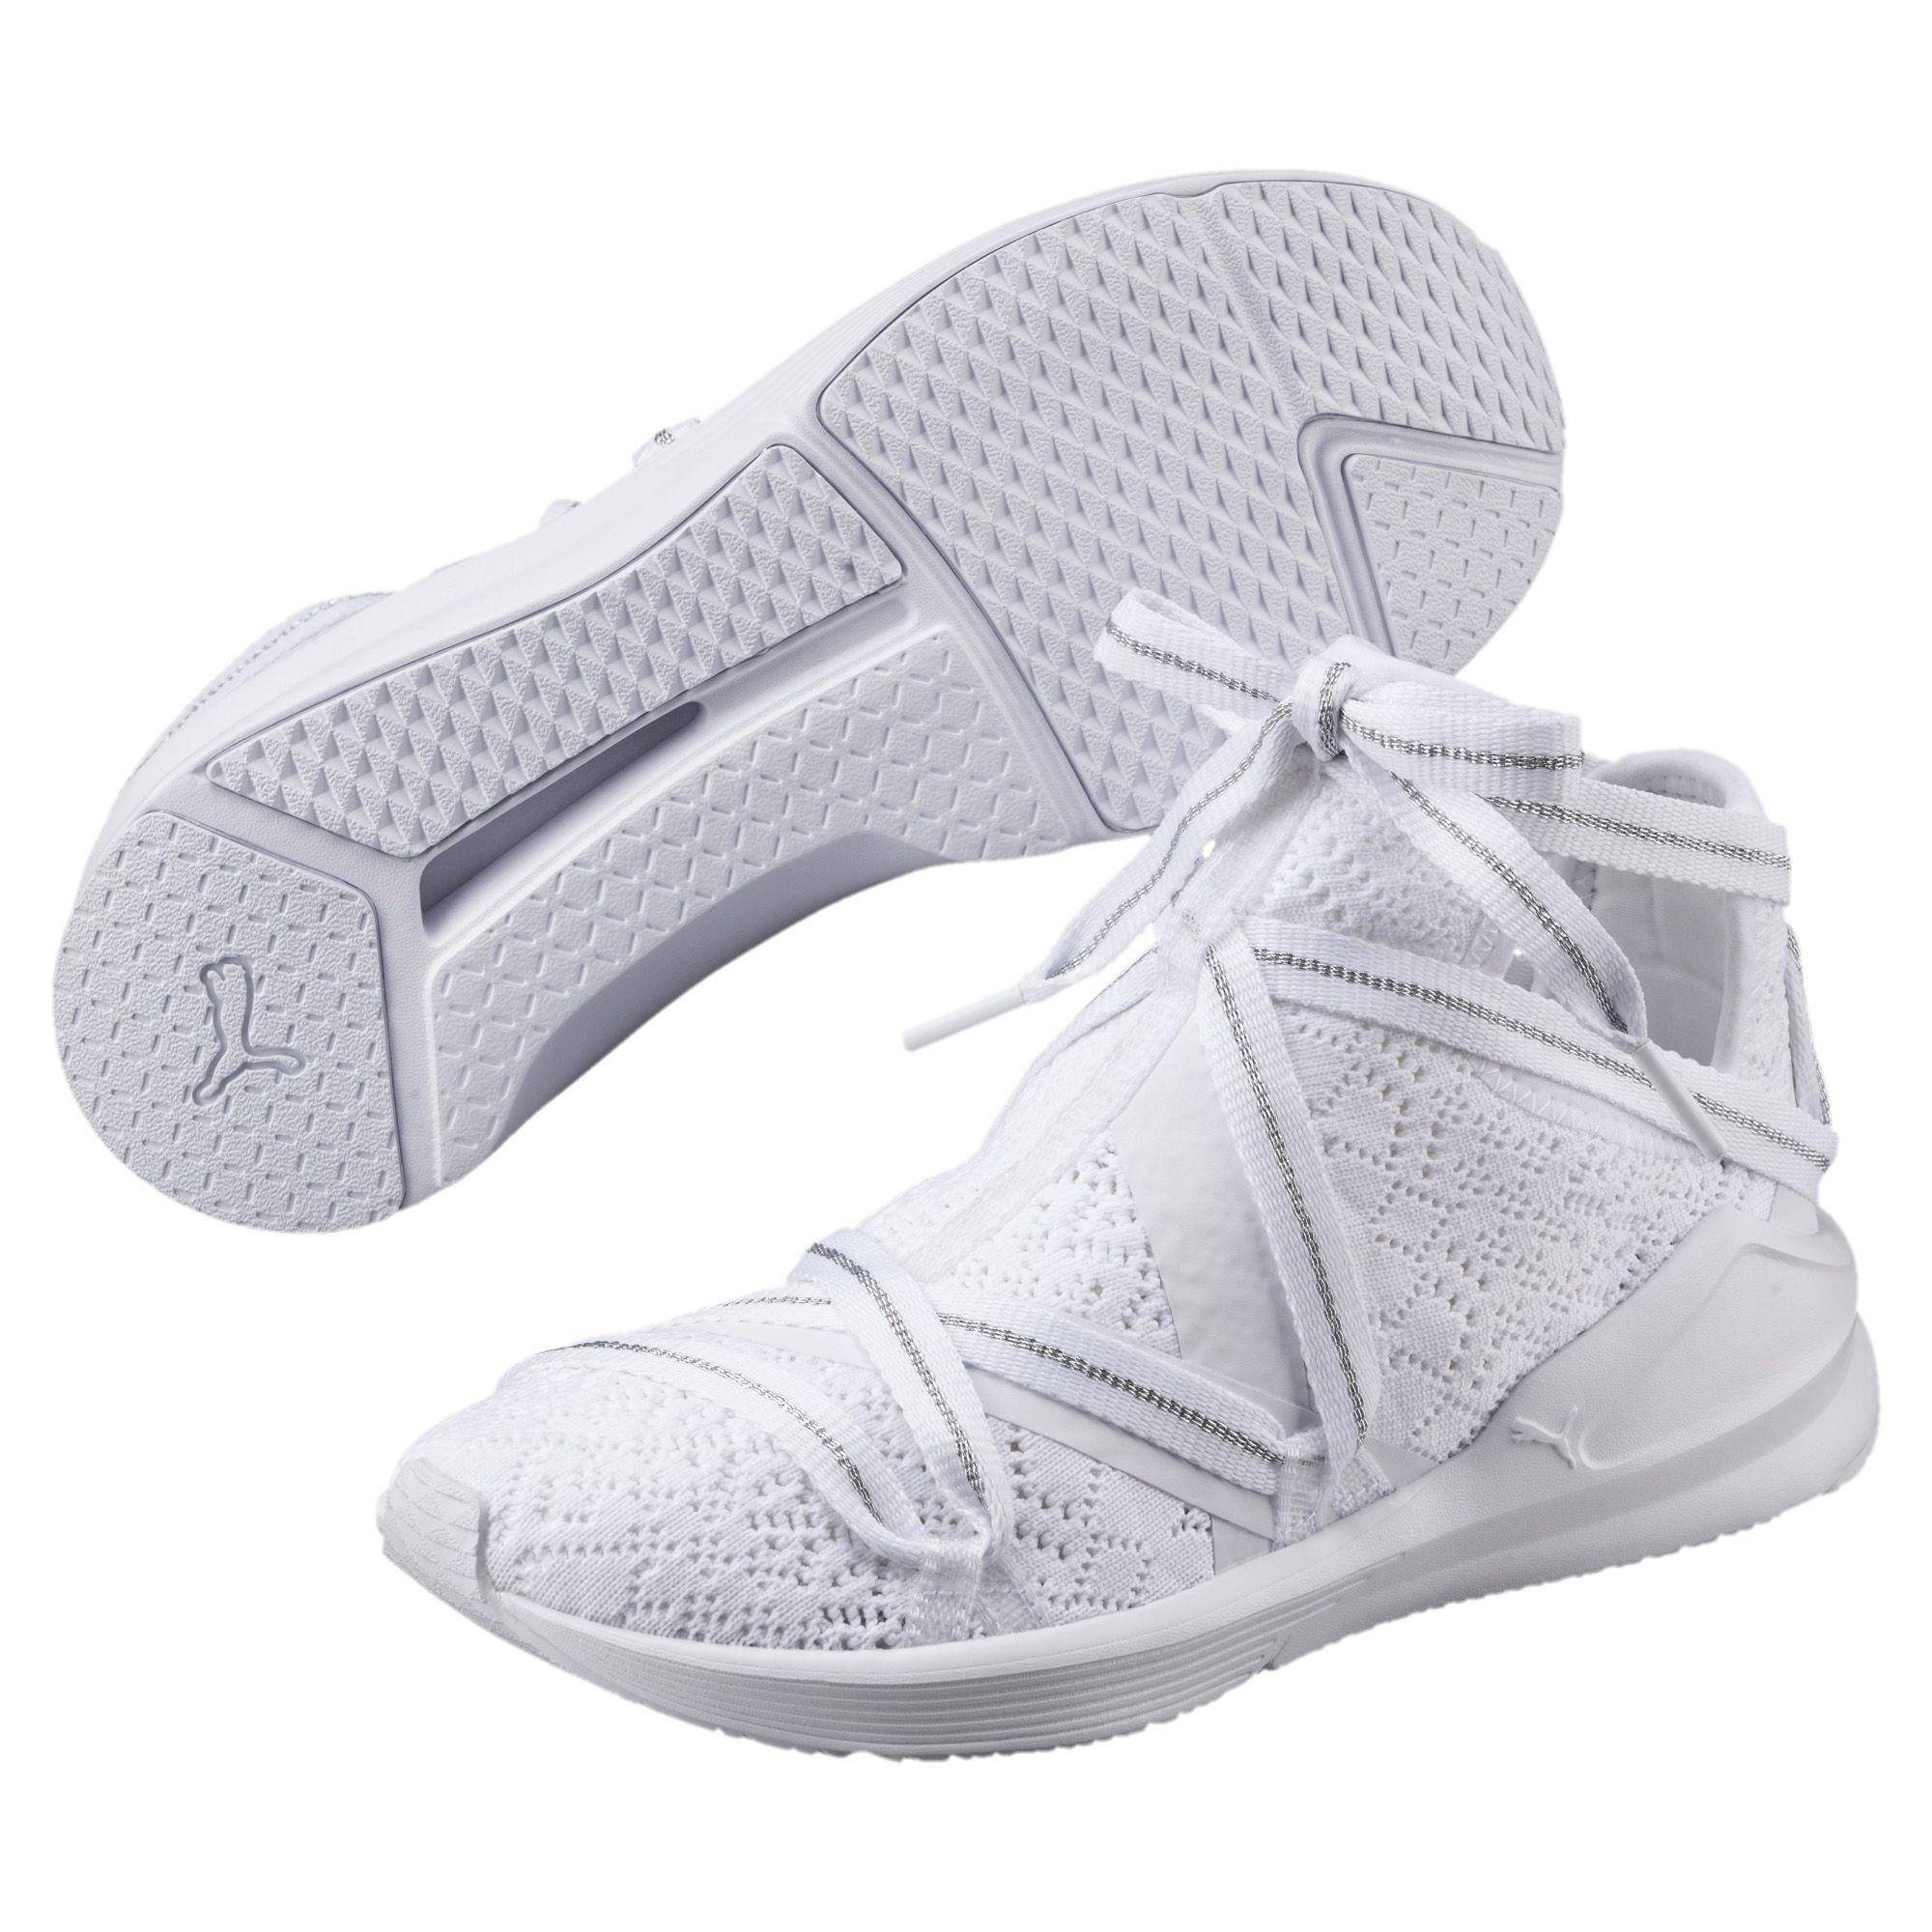 Lyst - PUMA Fierce Rope Ep Women s Training Shoes in White d476c0ddf